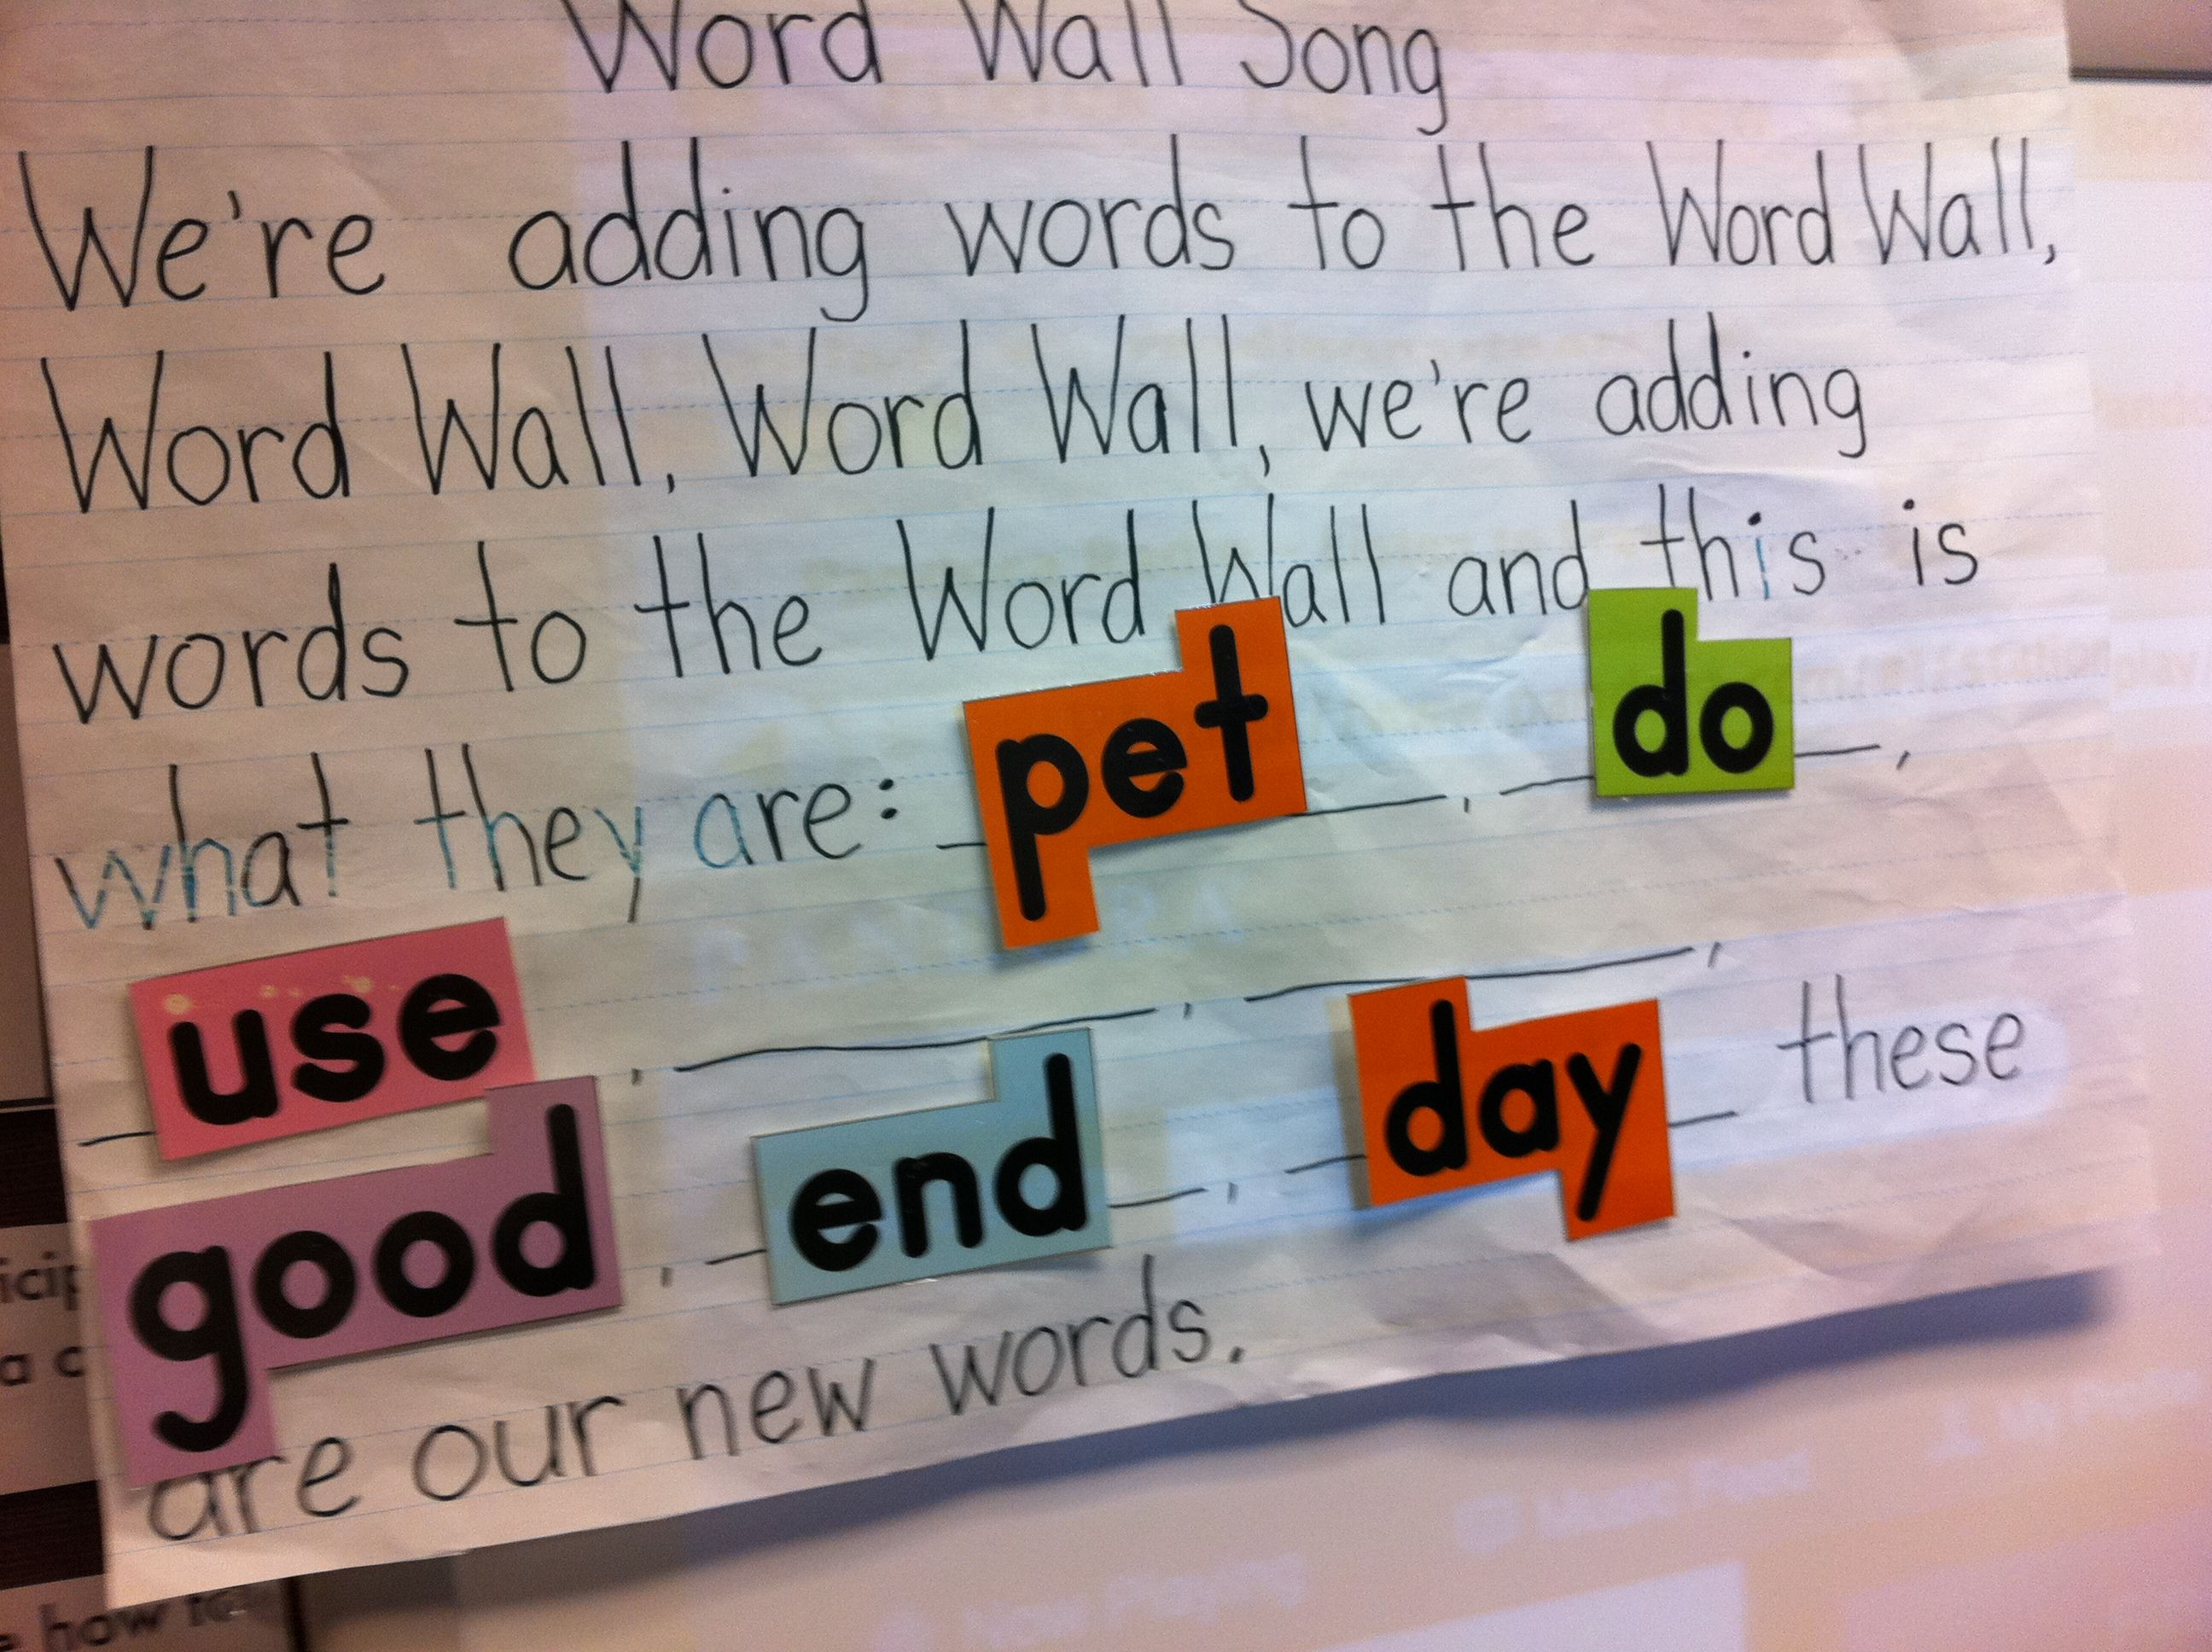 Word Wall Song